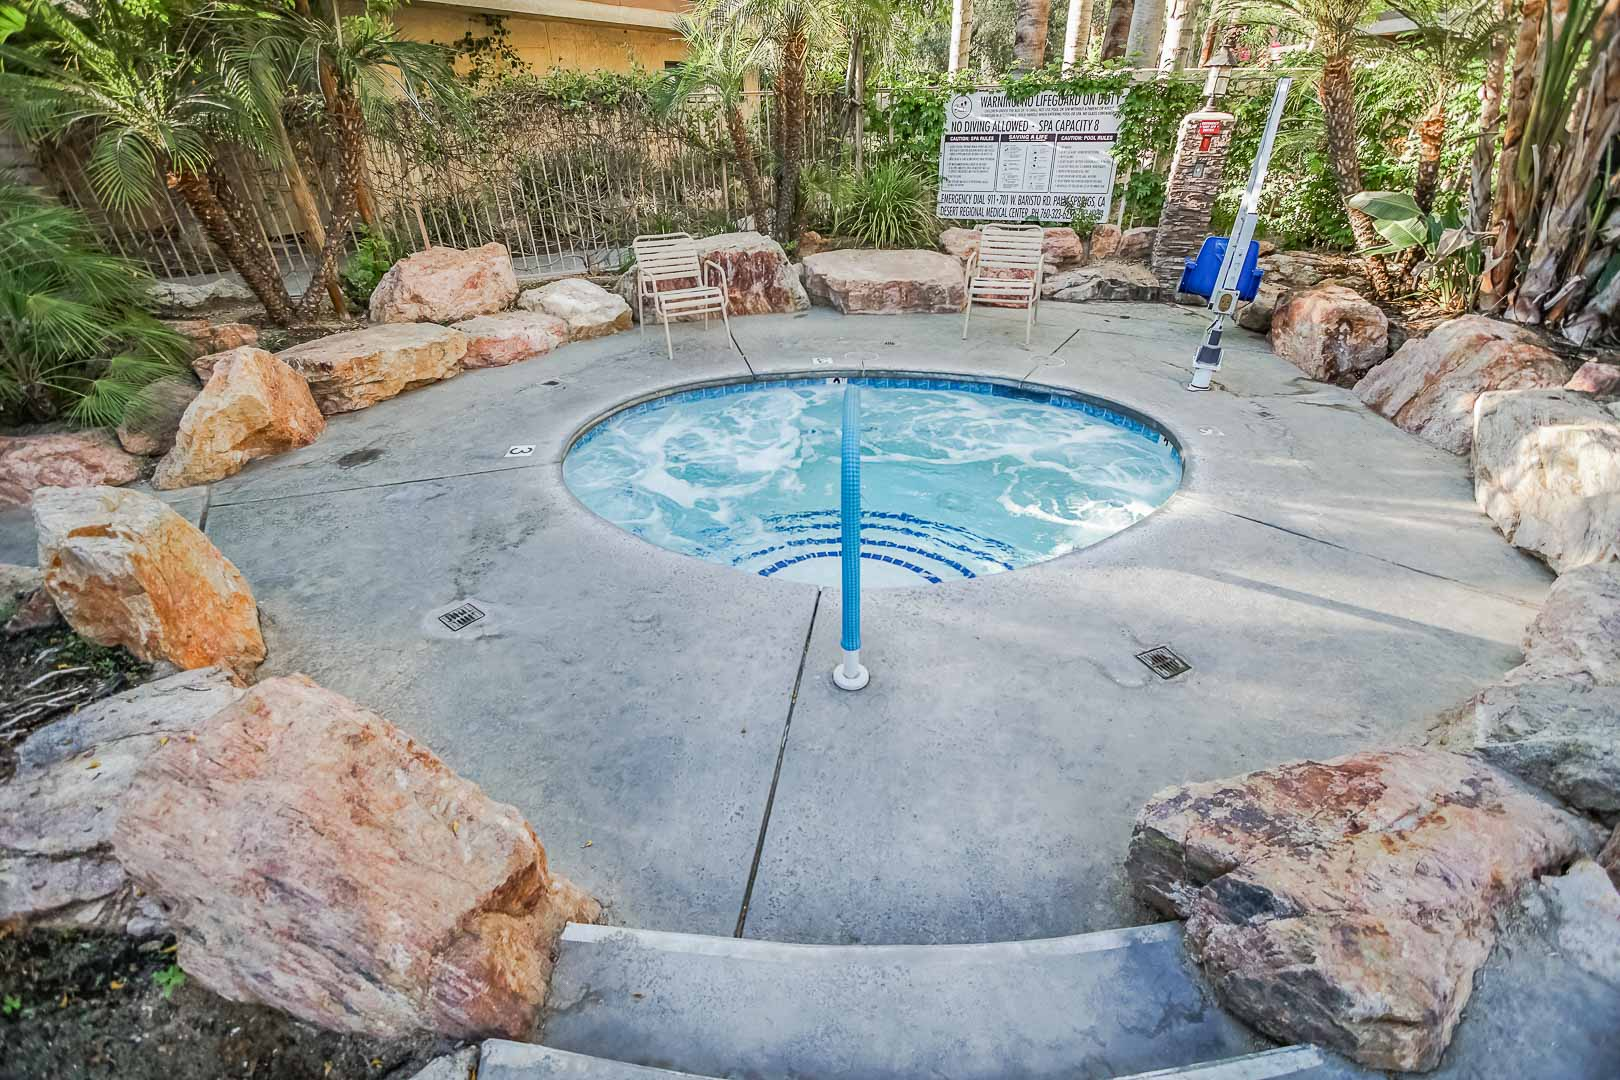 A peaceful outdoor Jacuzzi at VRI's Palm Springs Tennis Club in California.